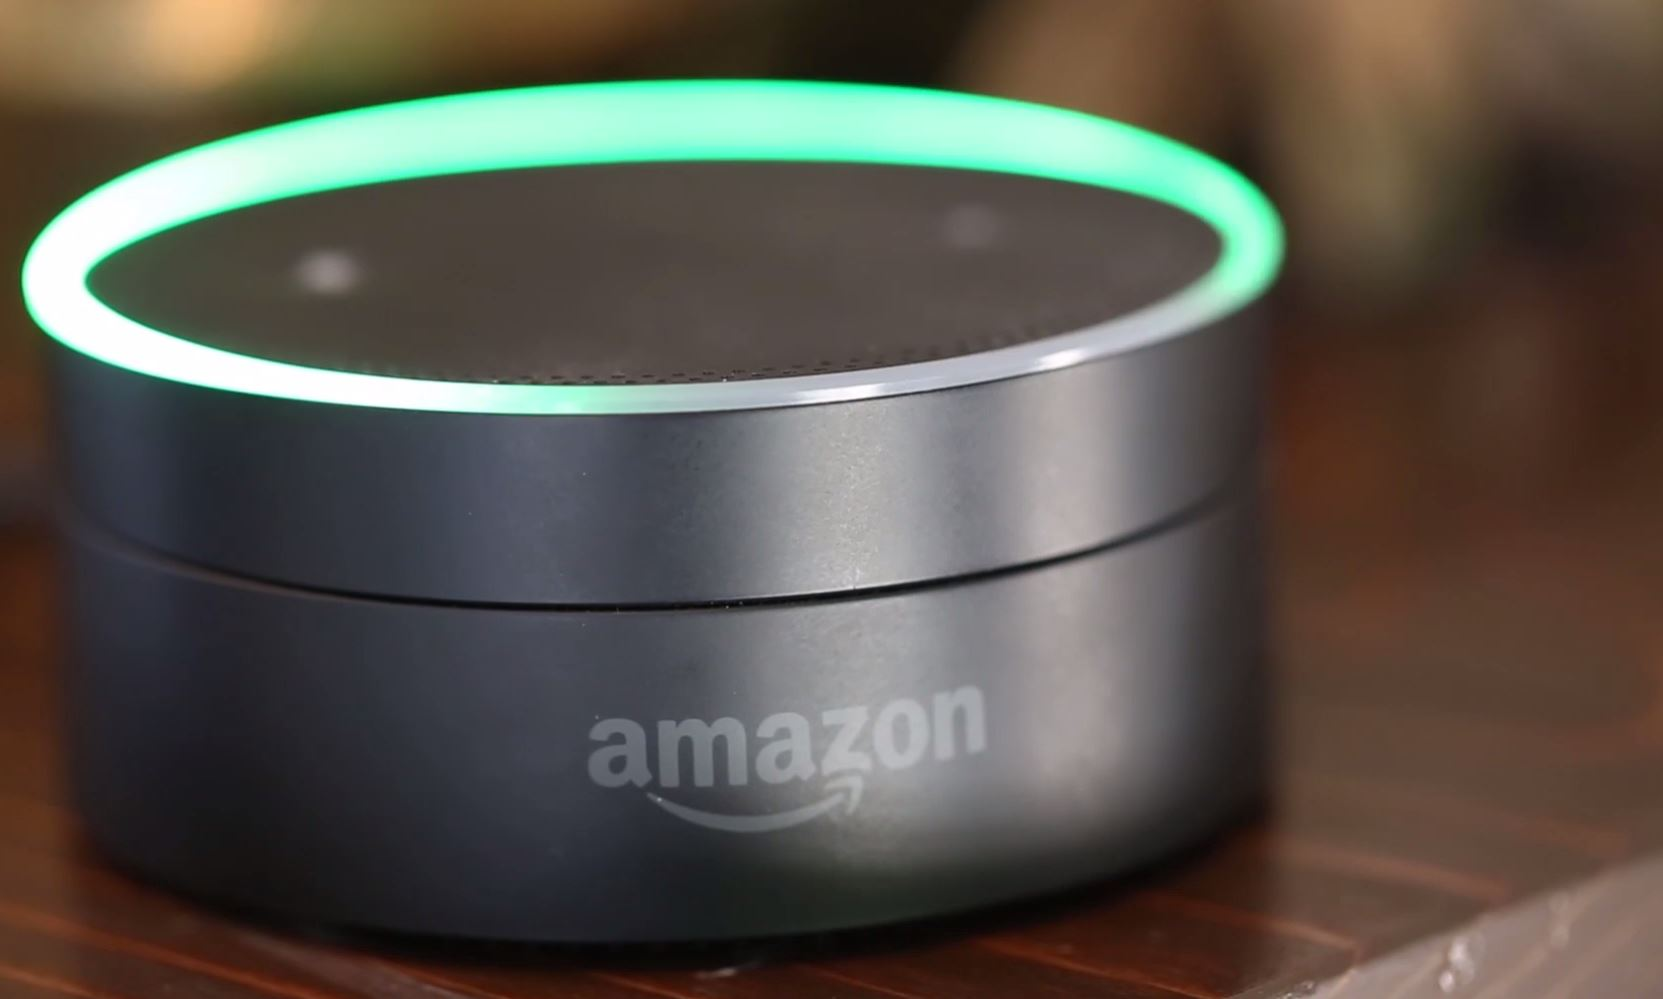 echo-dot-alexa-calls-messages-green.jpg